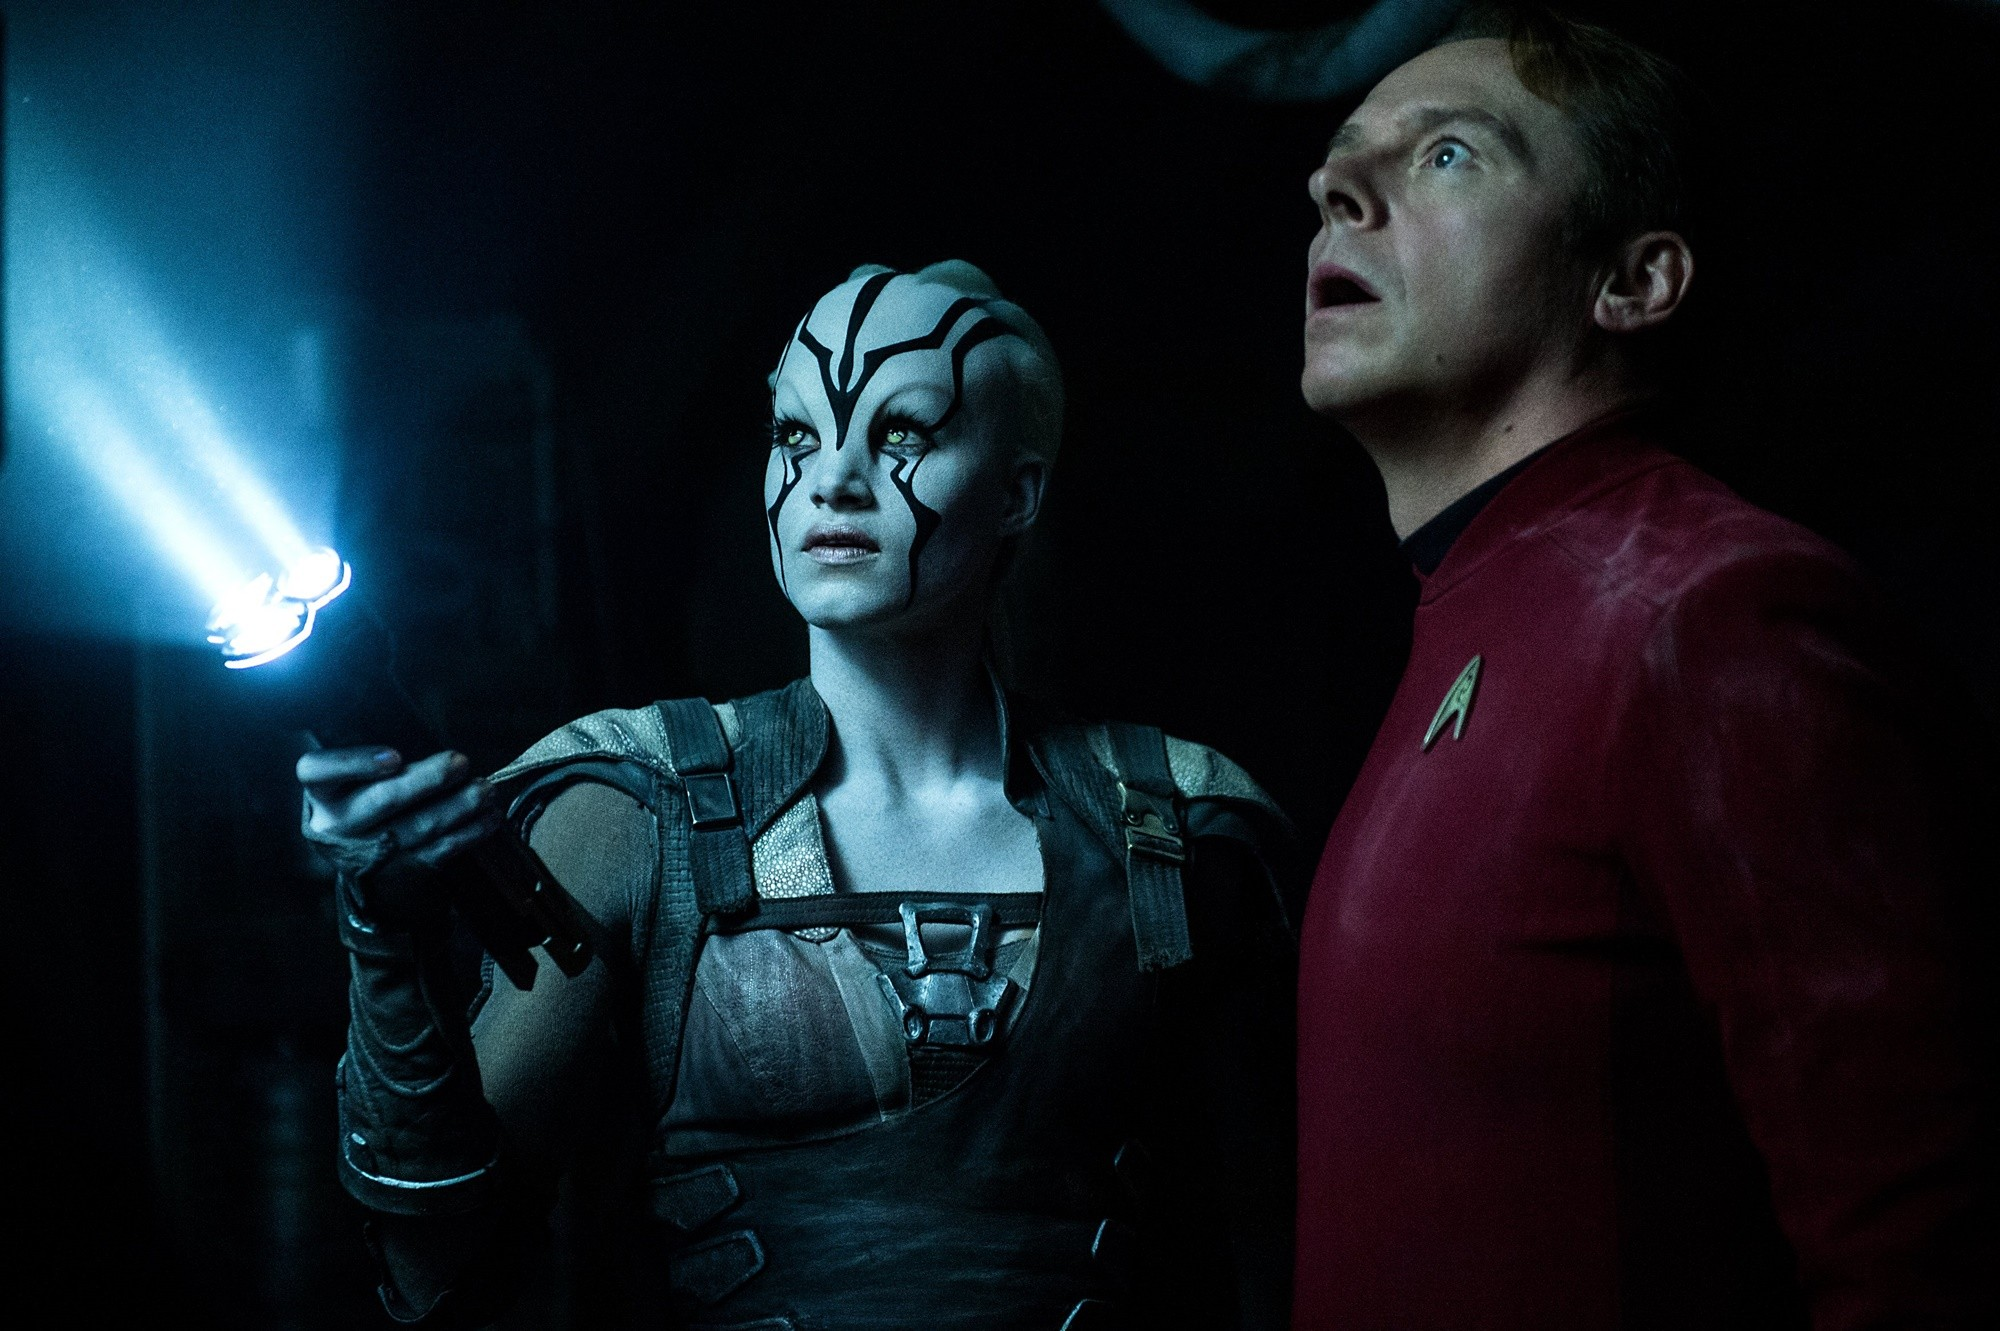 https://i2.wp.com/www.aceshowbiz.com/images/still/star-trek-beyond10.jpg